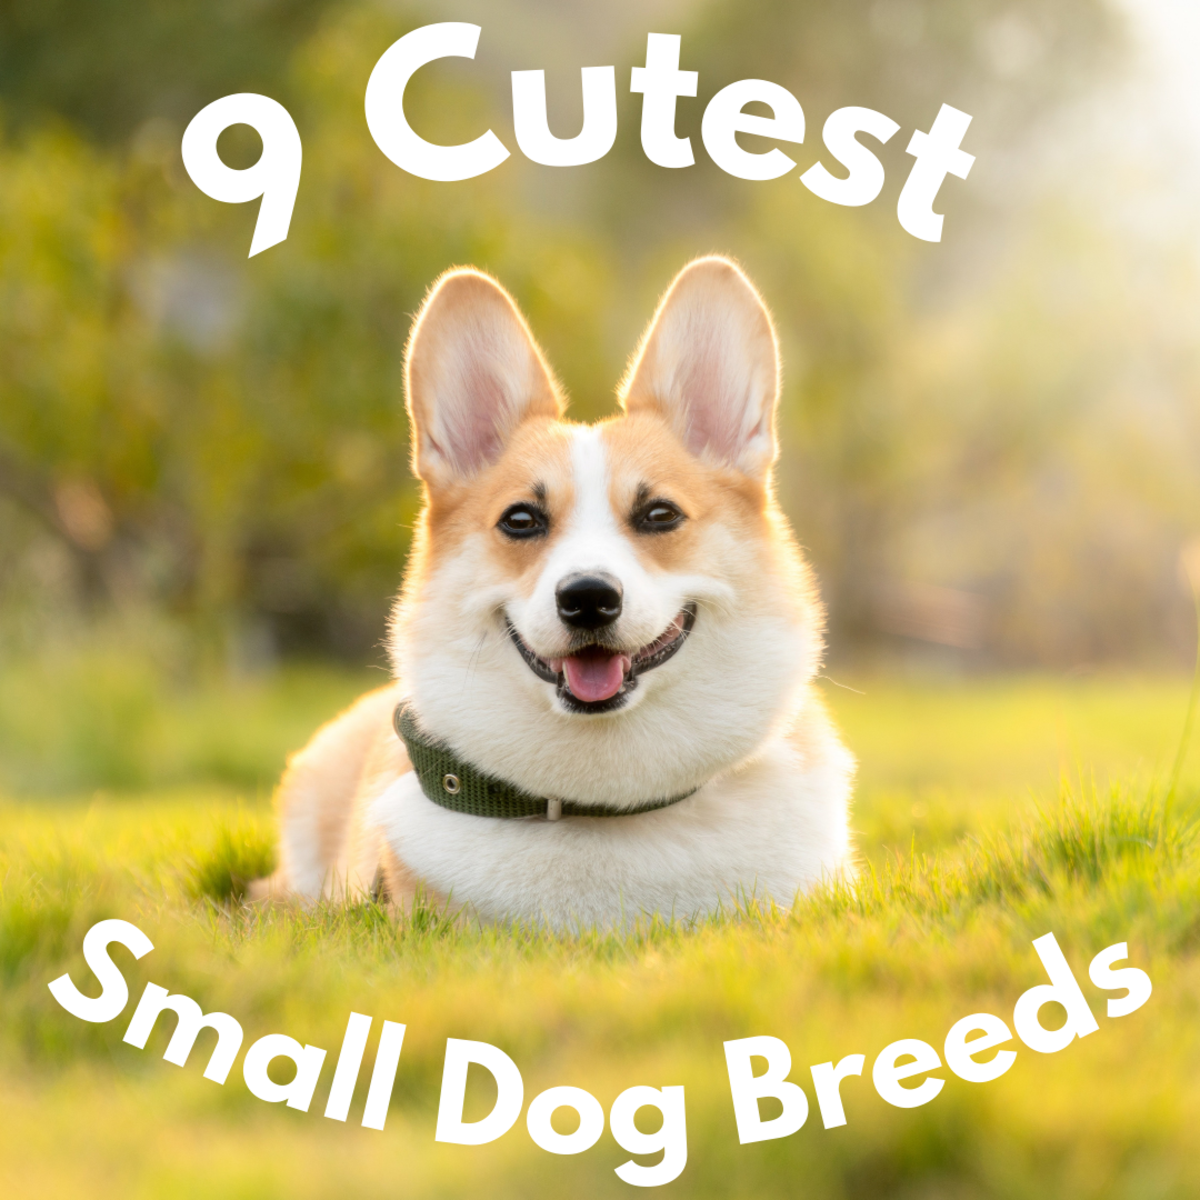 9 of the Cutest Small Dog Breeds